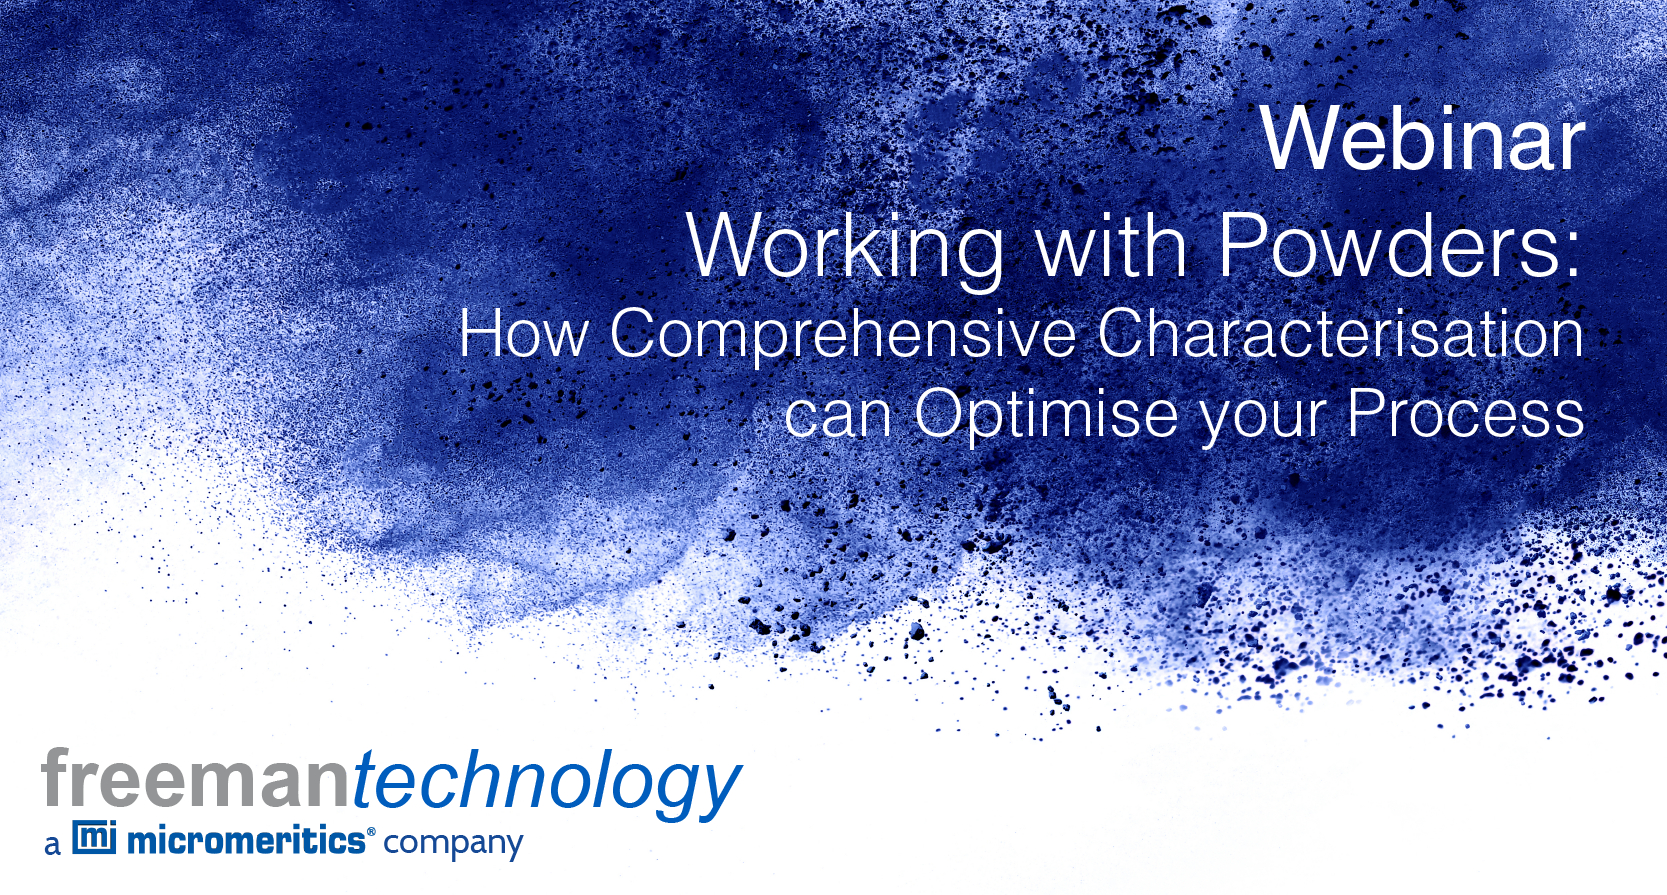 Webinar - working with powders: how comprehensive characterisation can optimise your process